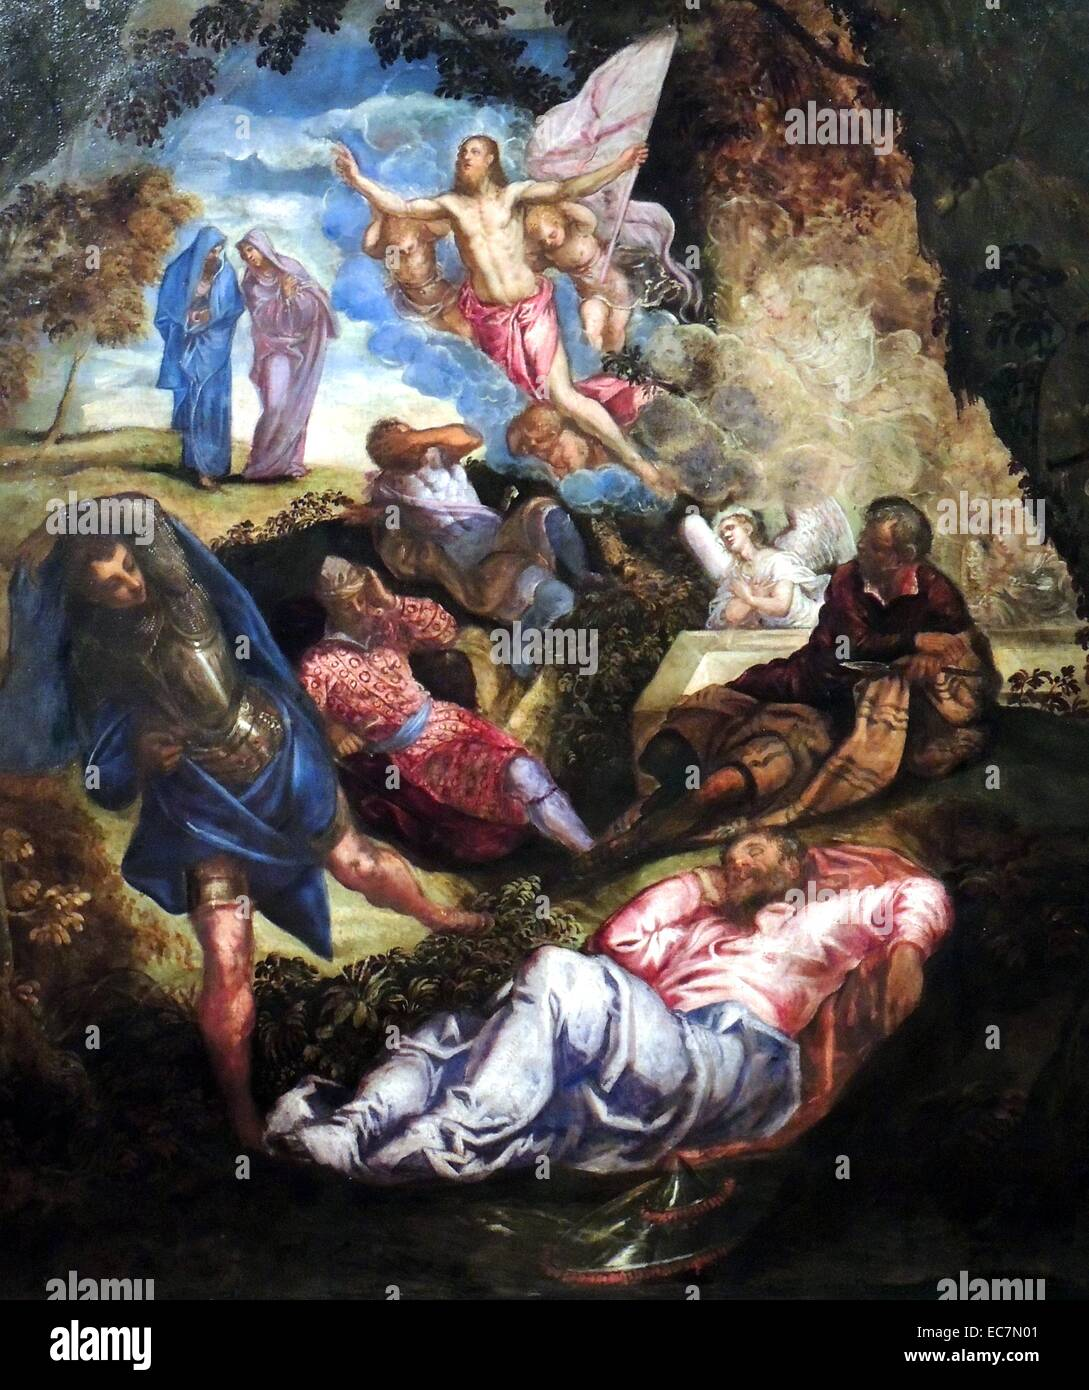 The Resurrection of Christ by Jacopo Robusti. - Stock Image